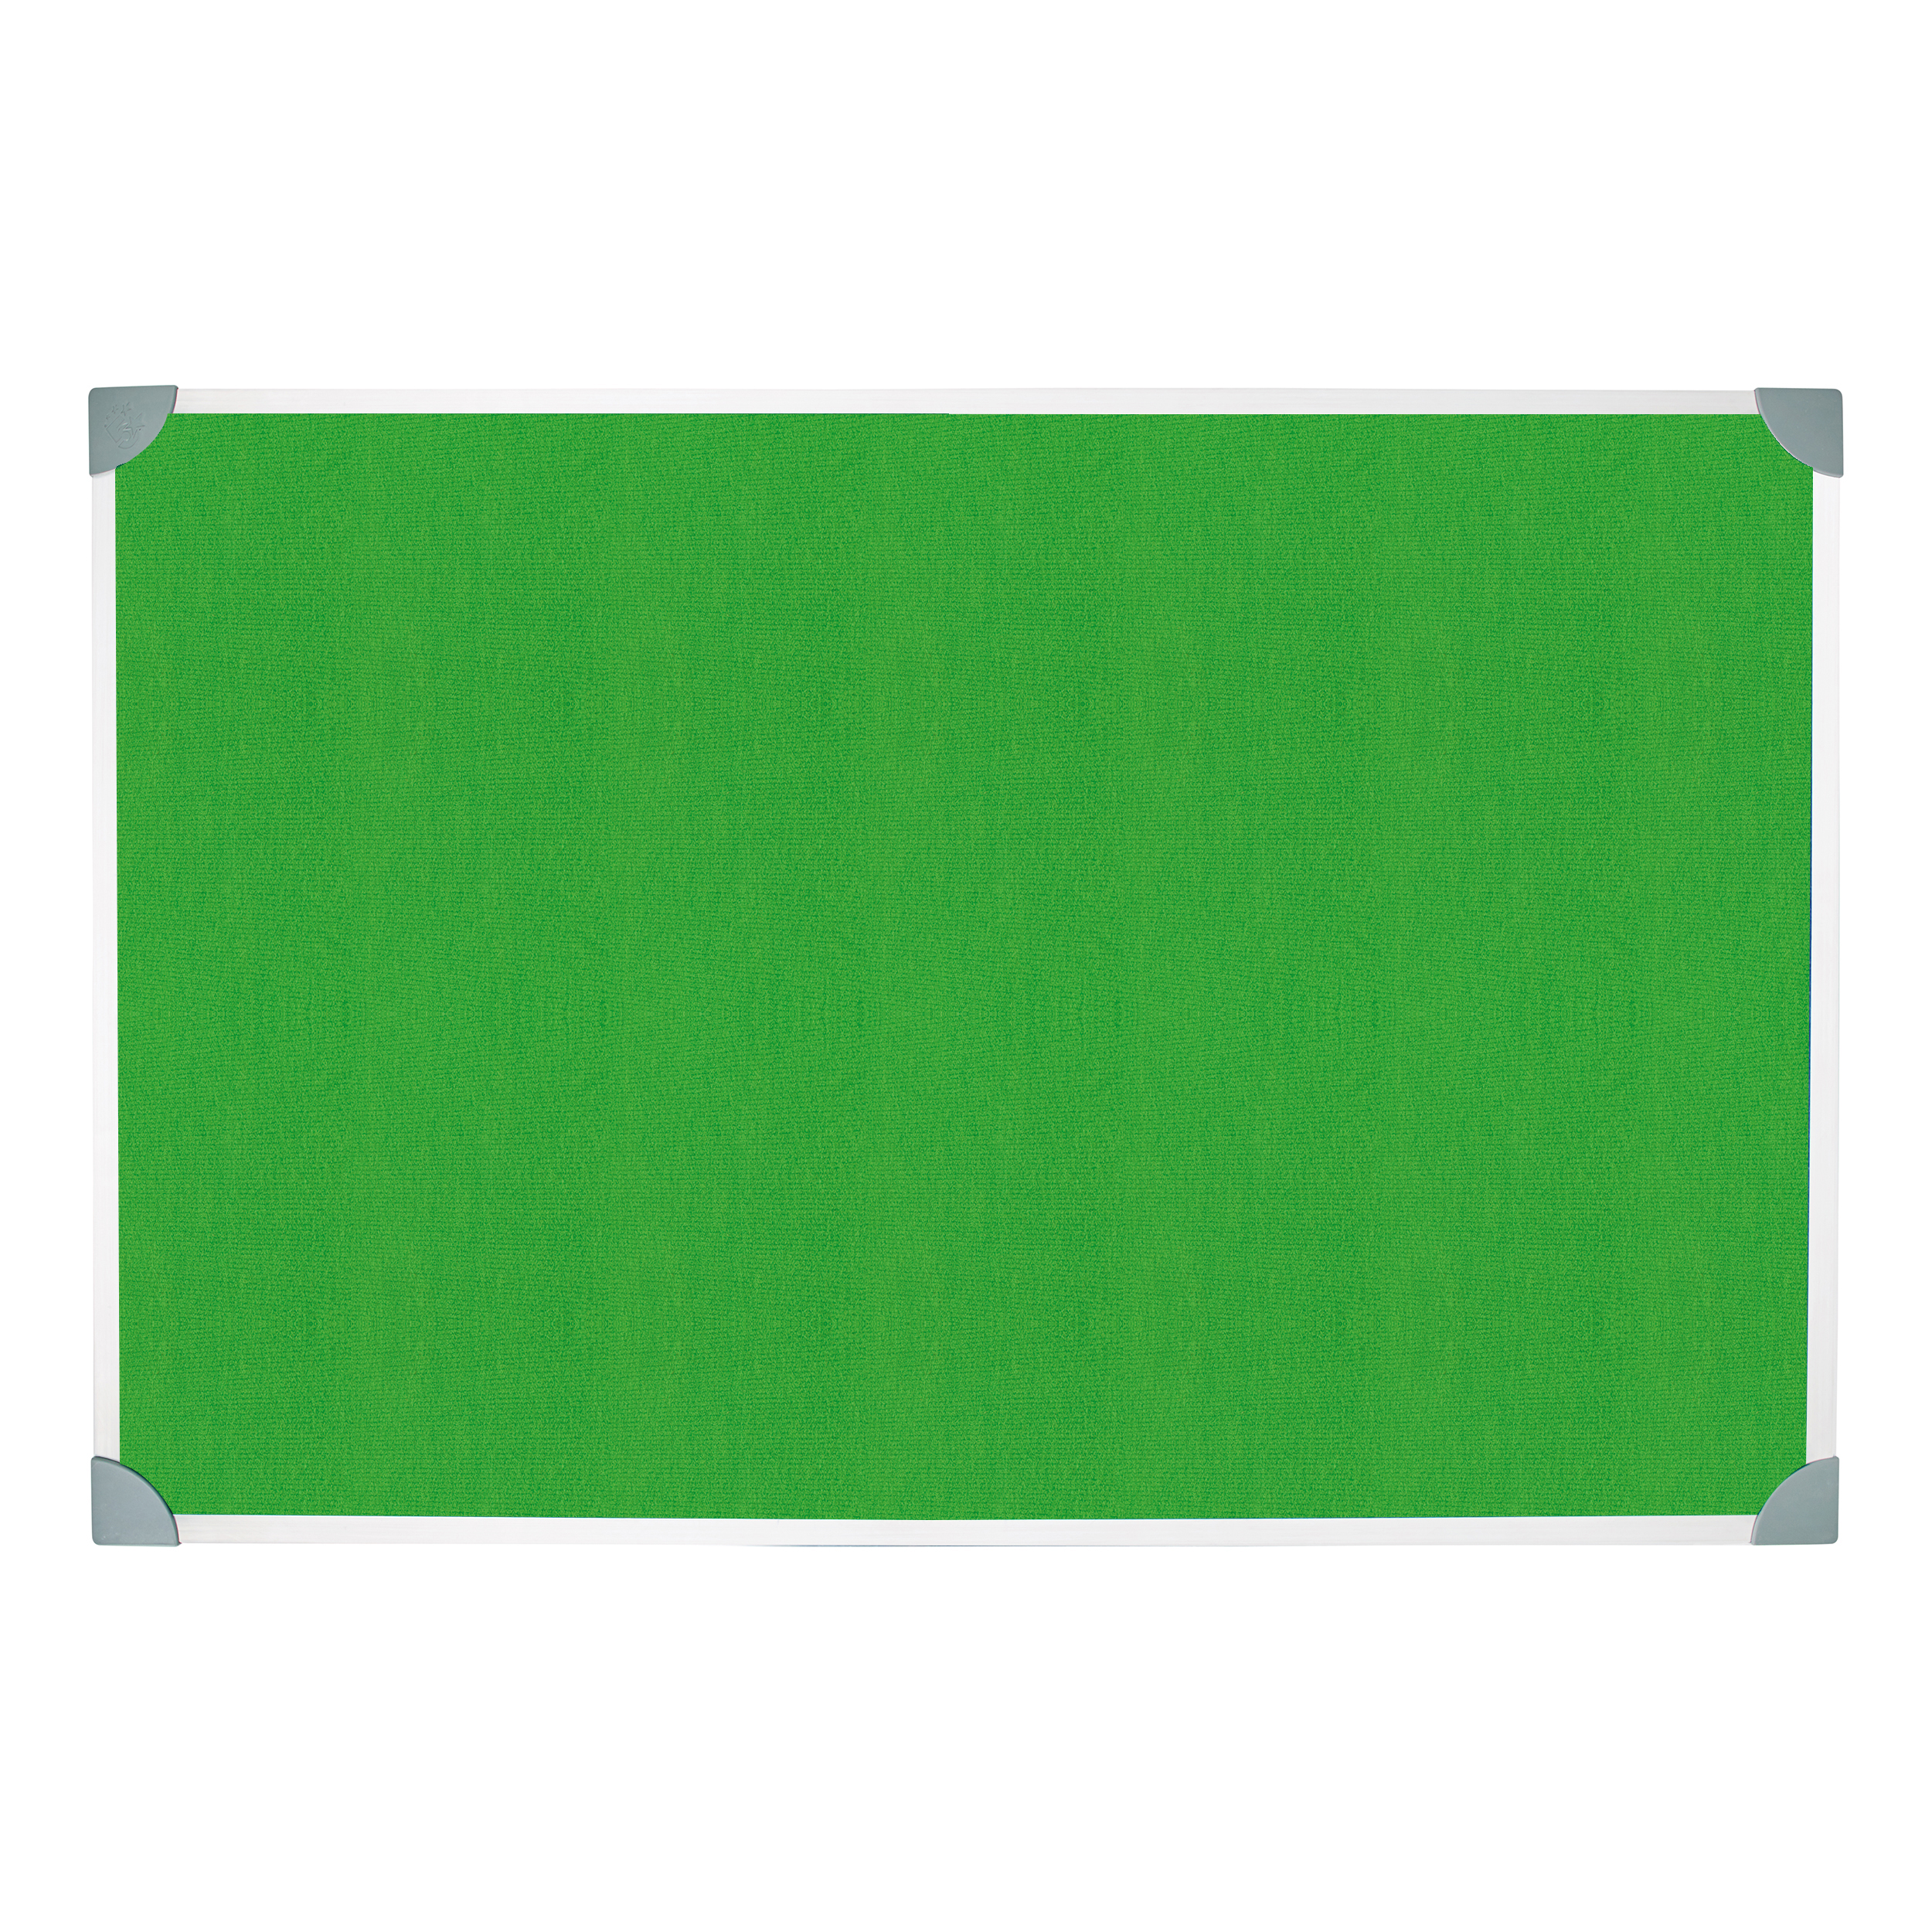 Bulletin boards or accessories 5 Star Green Felt Noticeboard 1200x900mm Aluminium Frame